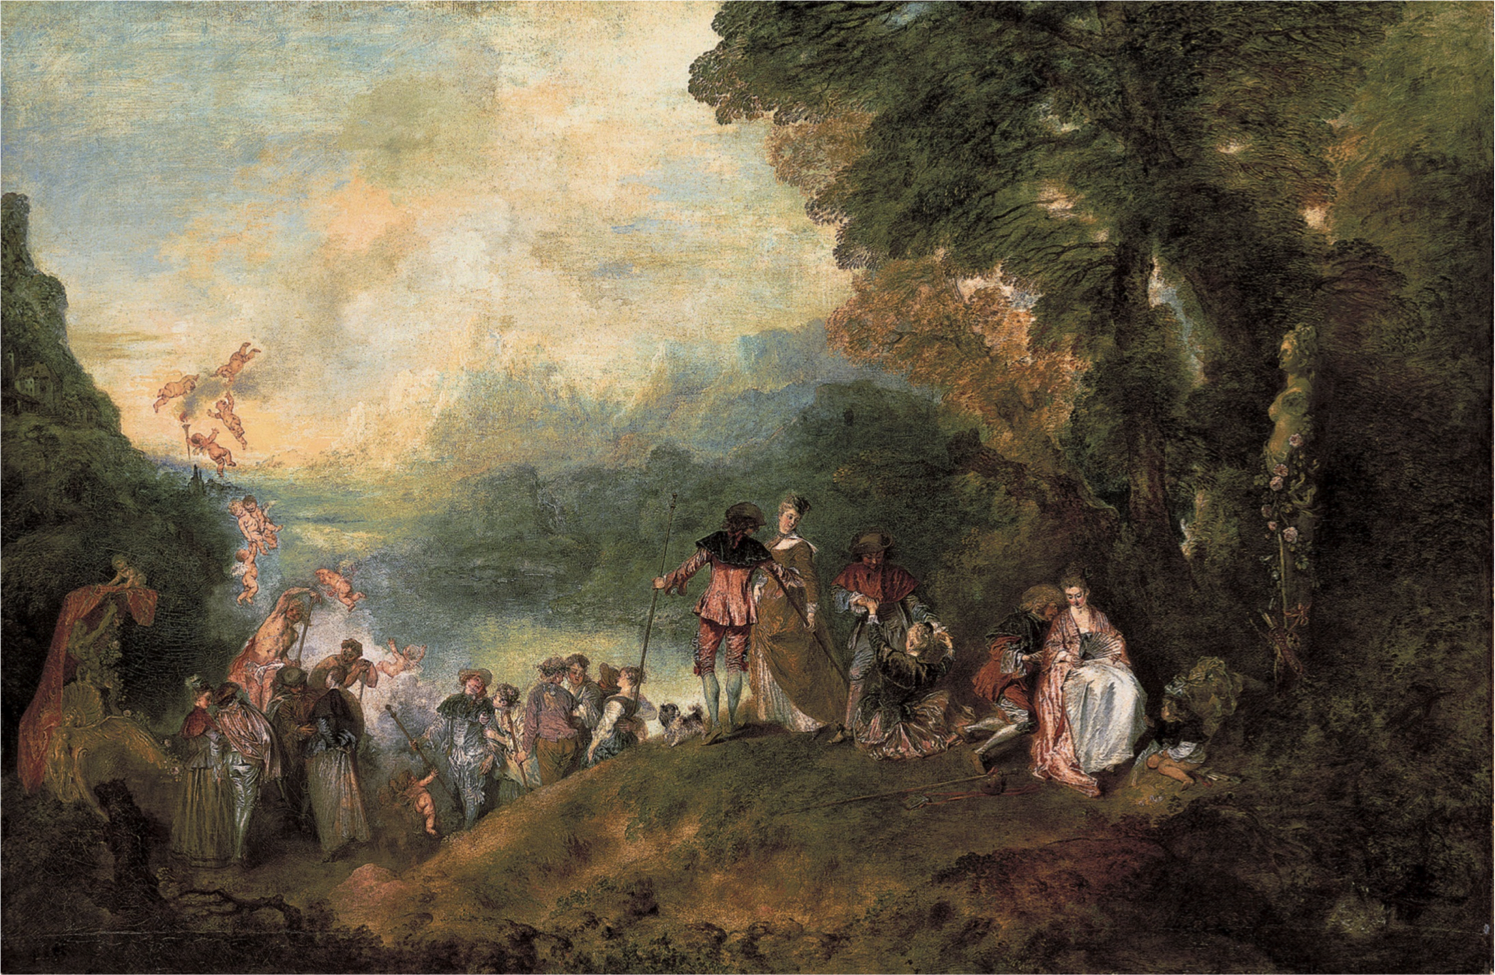 Pilgrimage to the Island of Cythera by Jean-Antoine Watteau. circa 1718-1721. Rococo.